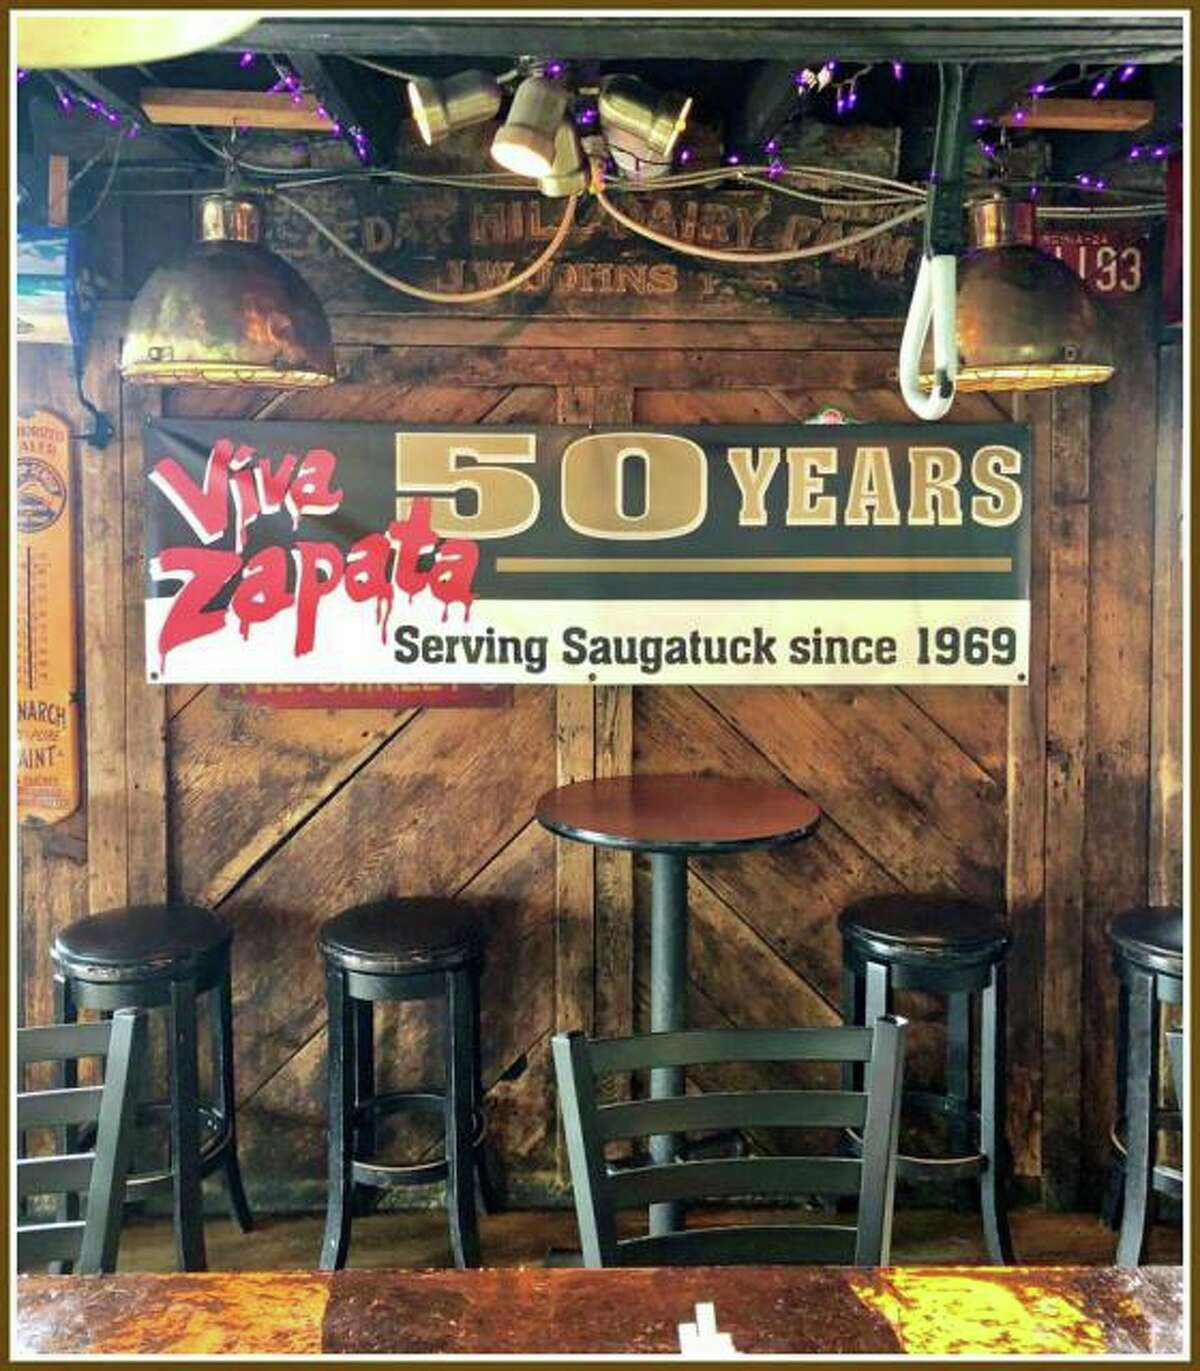 Viva Zapata will celebrate 50 years in Westport with a party on July 27 from noon to closing.